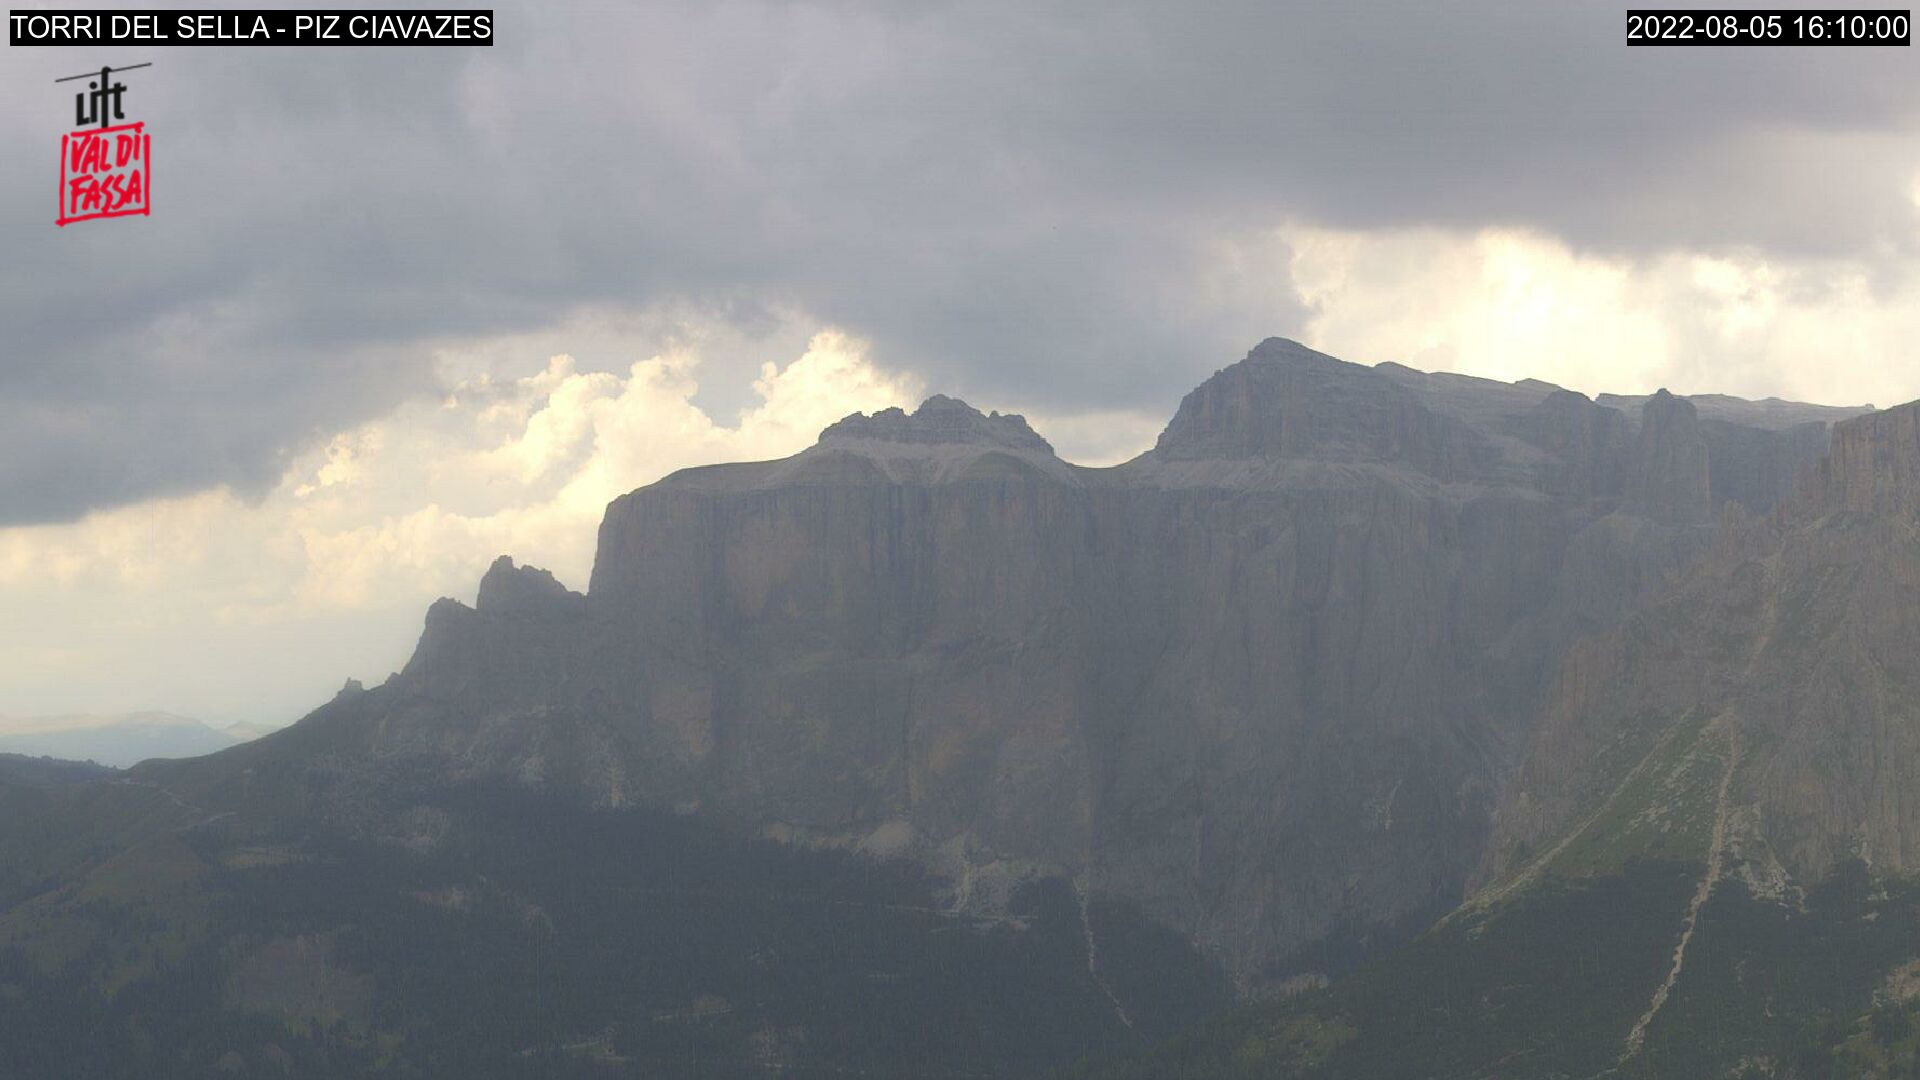 Webcam Campitello di Fassa - Passo Sella - Altitude: 2,413 metresArea: Col dei RossiPanoramic viewpoint: static webcam. View on Torri del Sella and Piz Ciavazes. Passo Sella can be reached by car from Canazei and links Val di Fassa to the near Val Gardena.